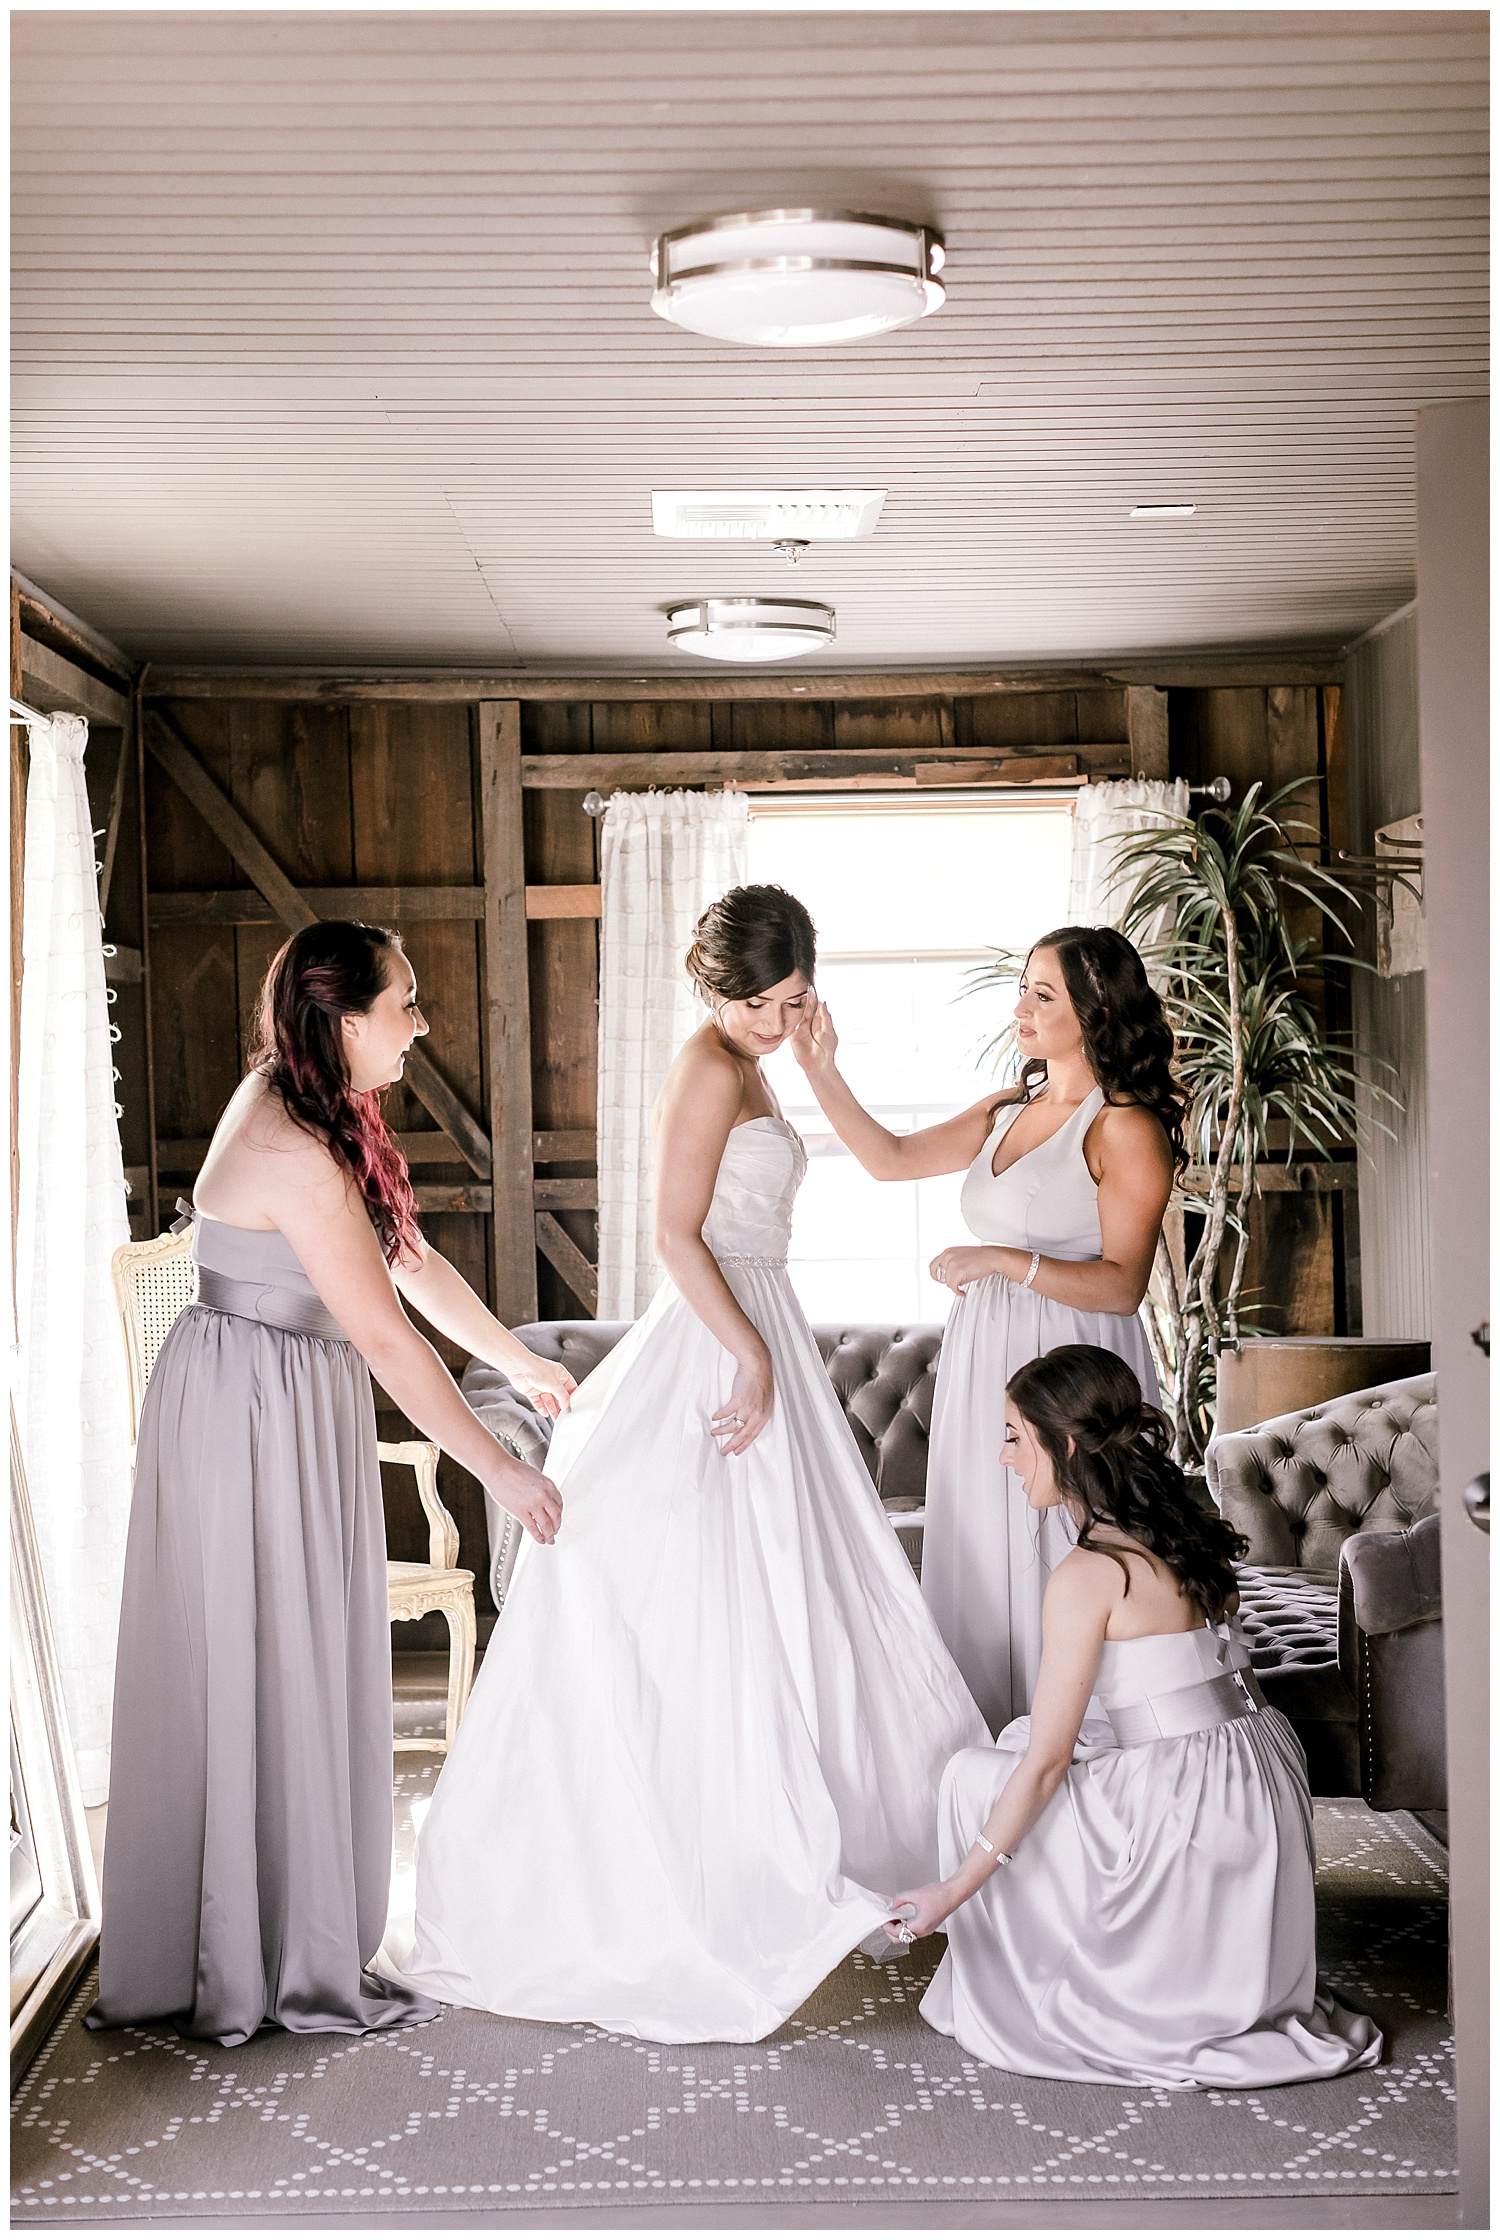 the-barns-cooper-molera-bridal party-in-suite-ags-photoart.jpg